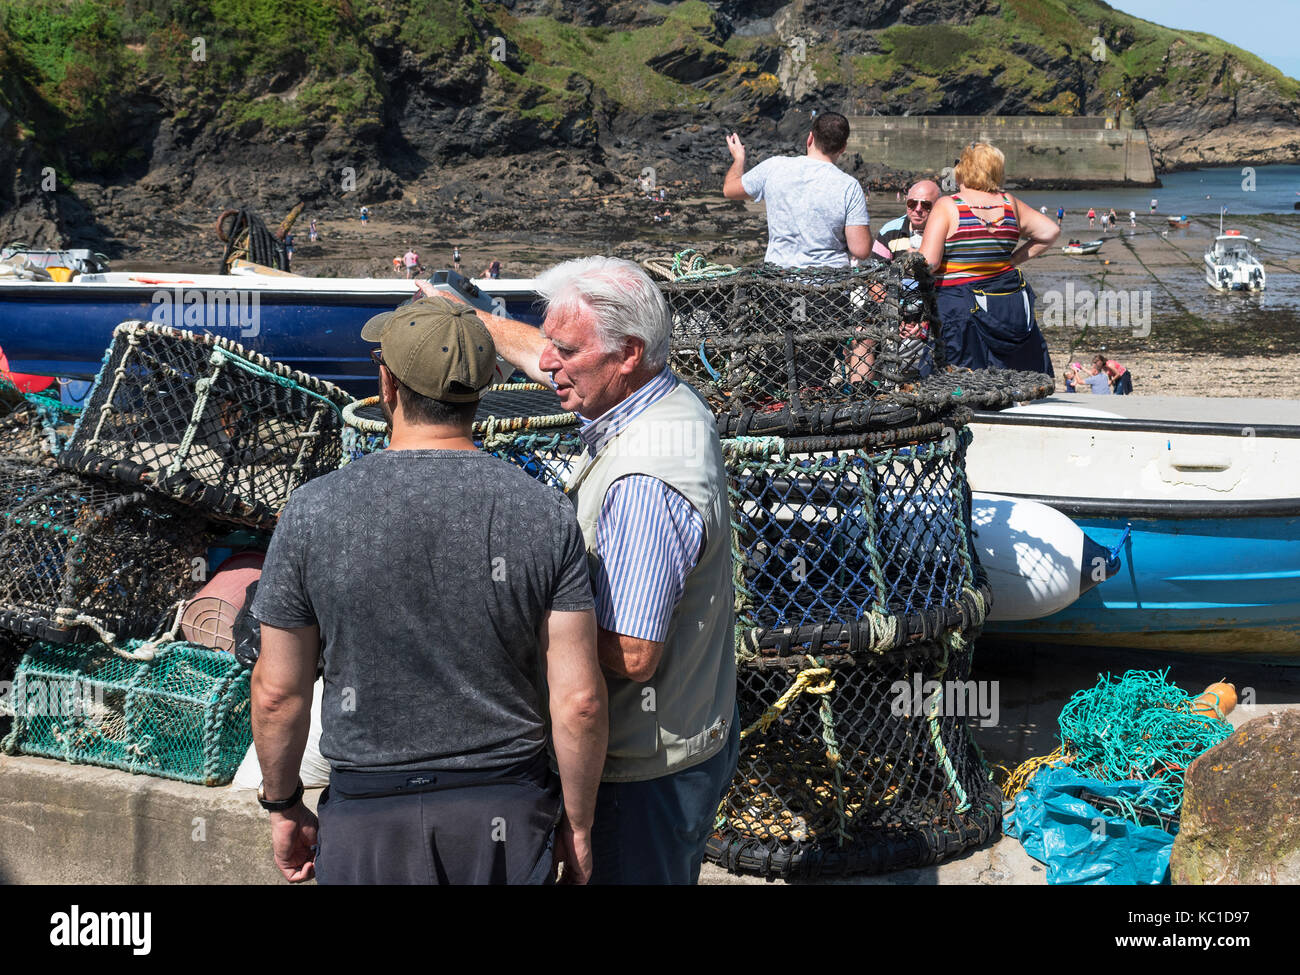 local cornish fishermen at the harbour in port isaac, cornwall, england, britain, uk. - Stock Image